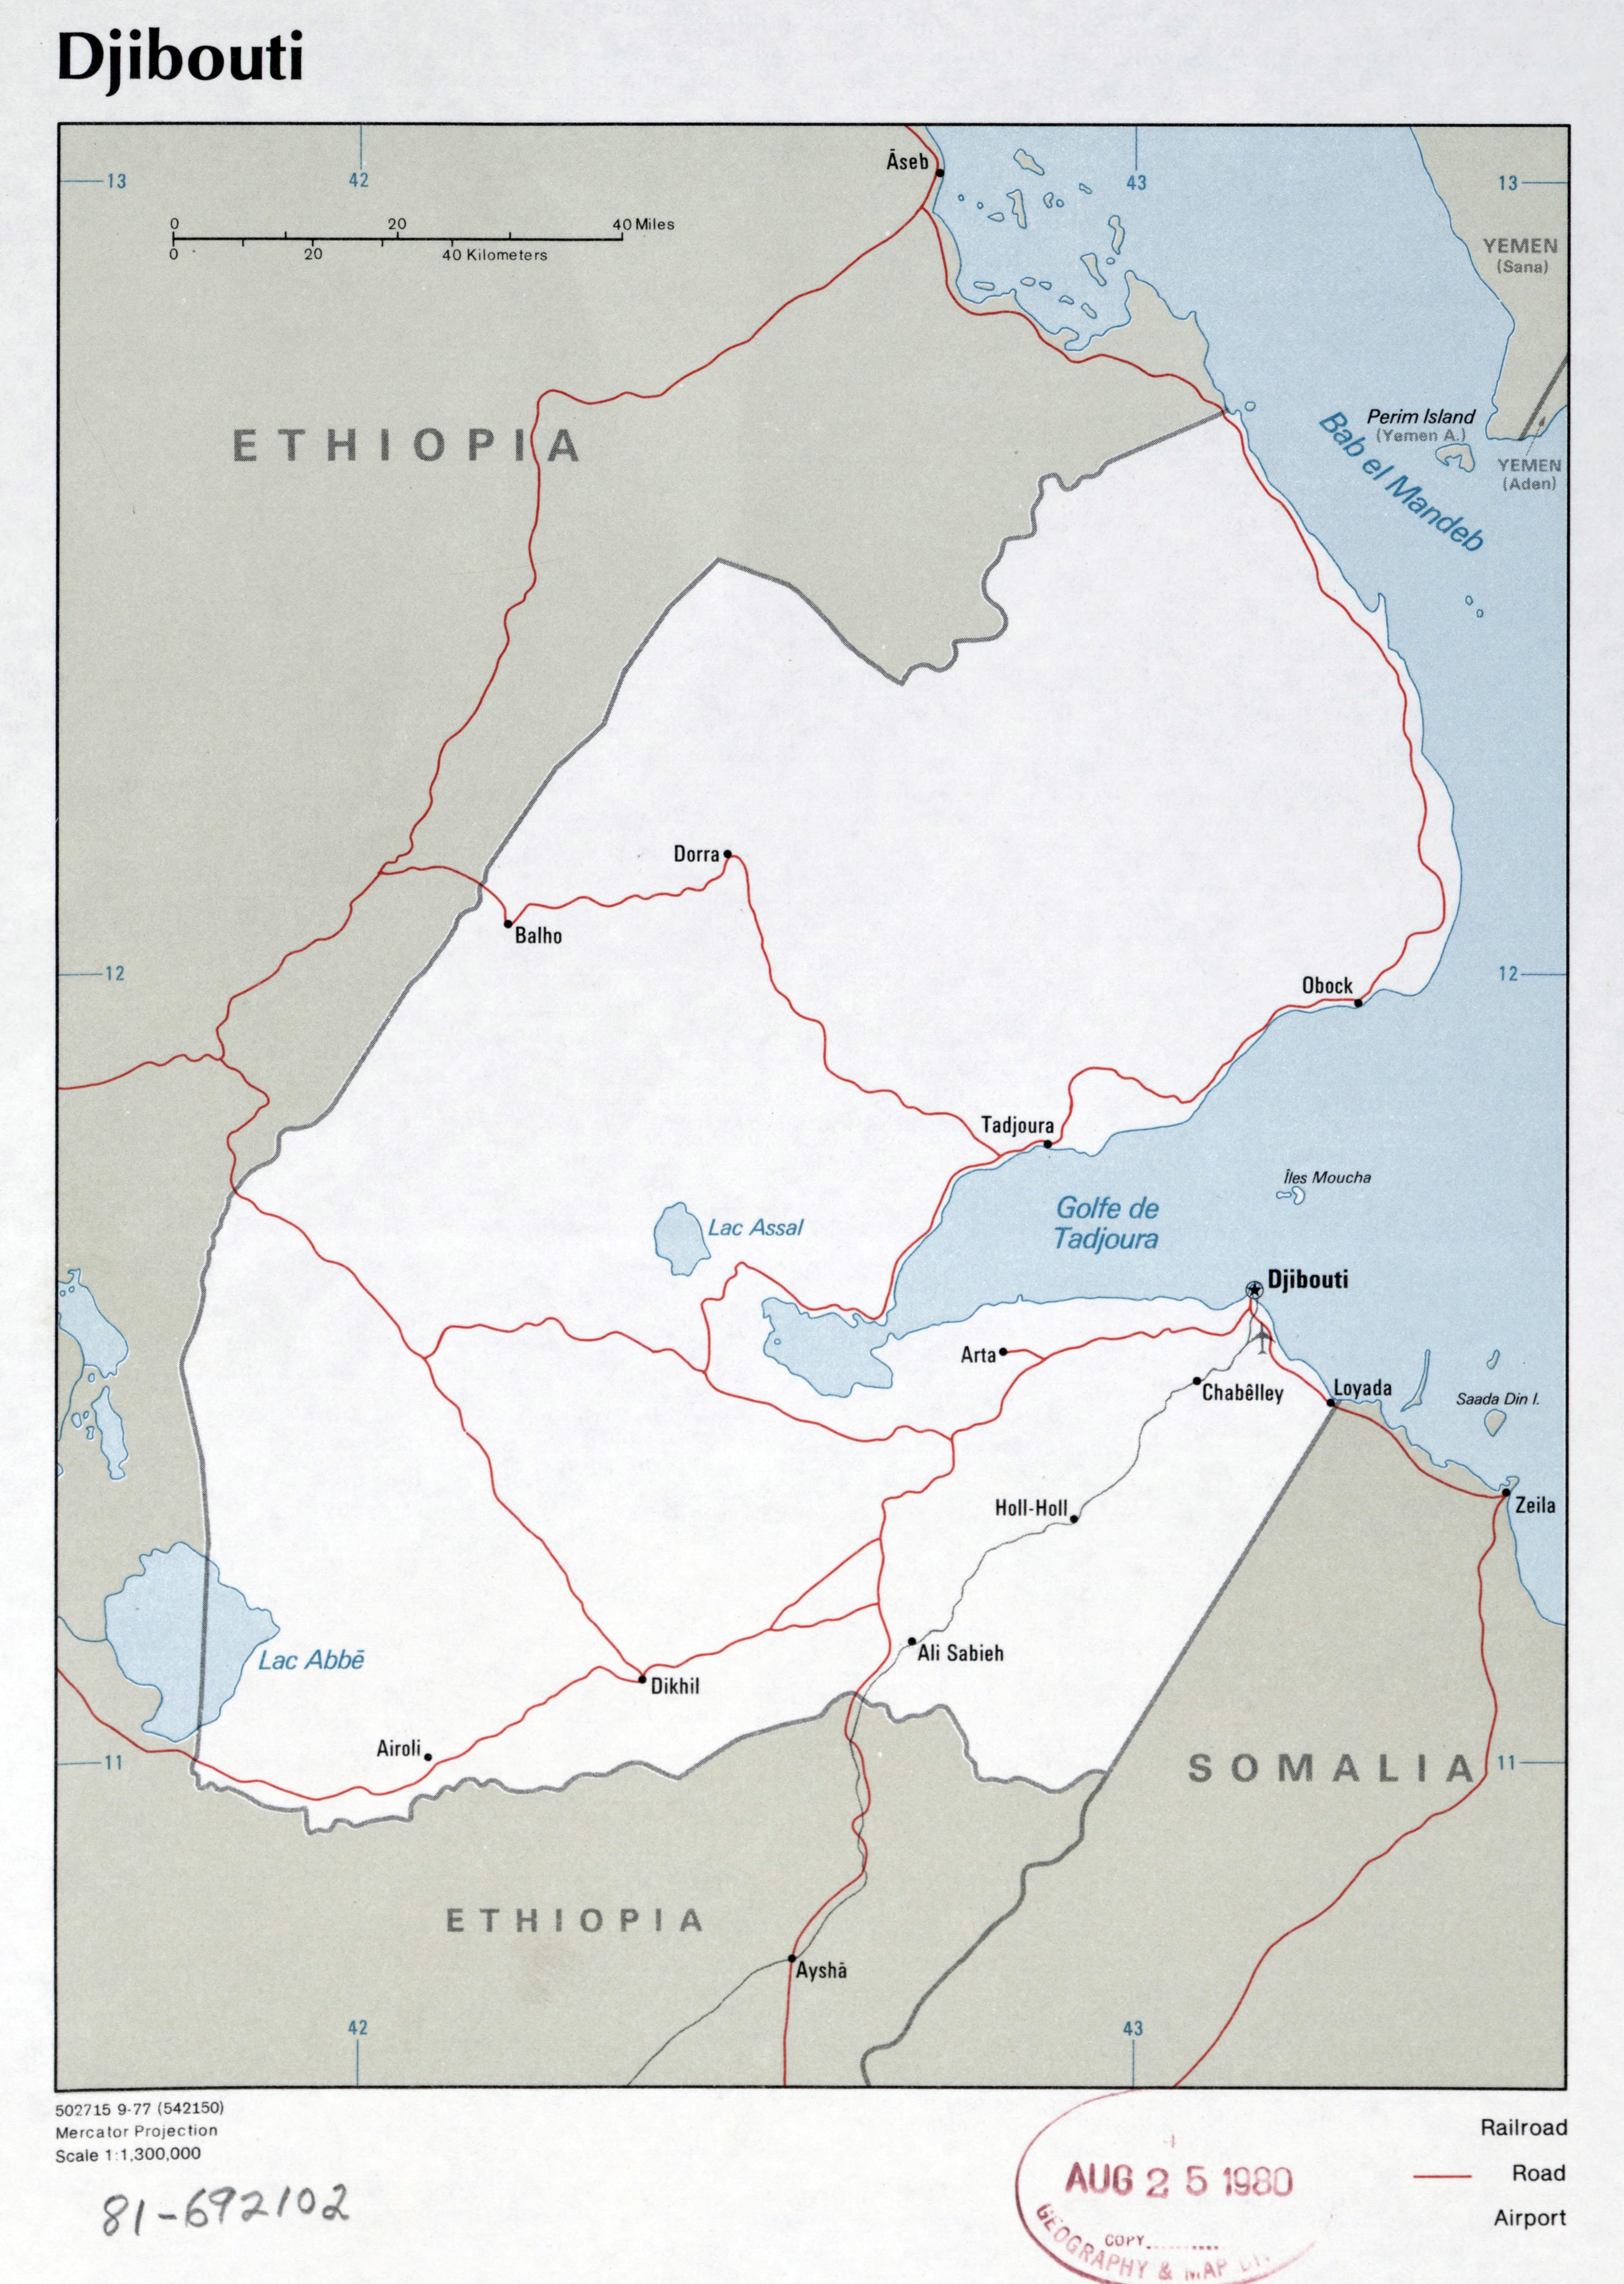 Large scale political map of Djibouti with roads major cities and